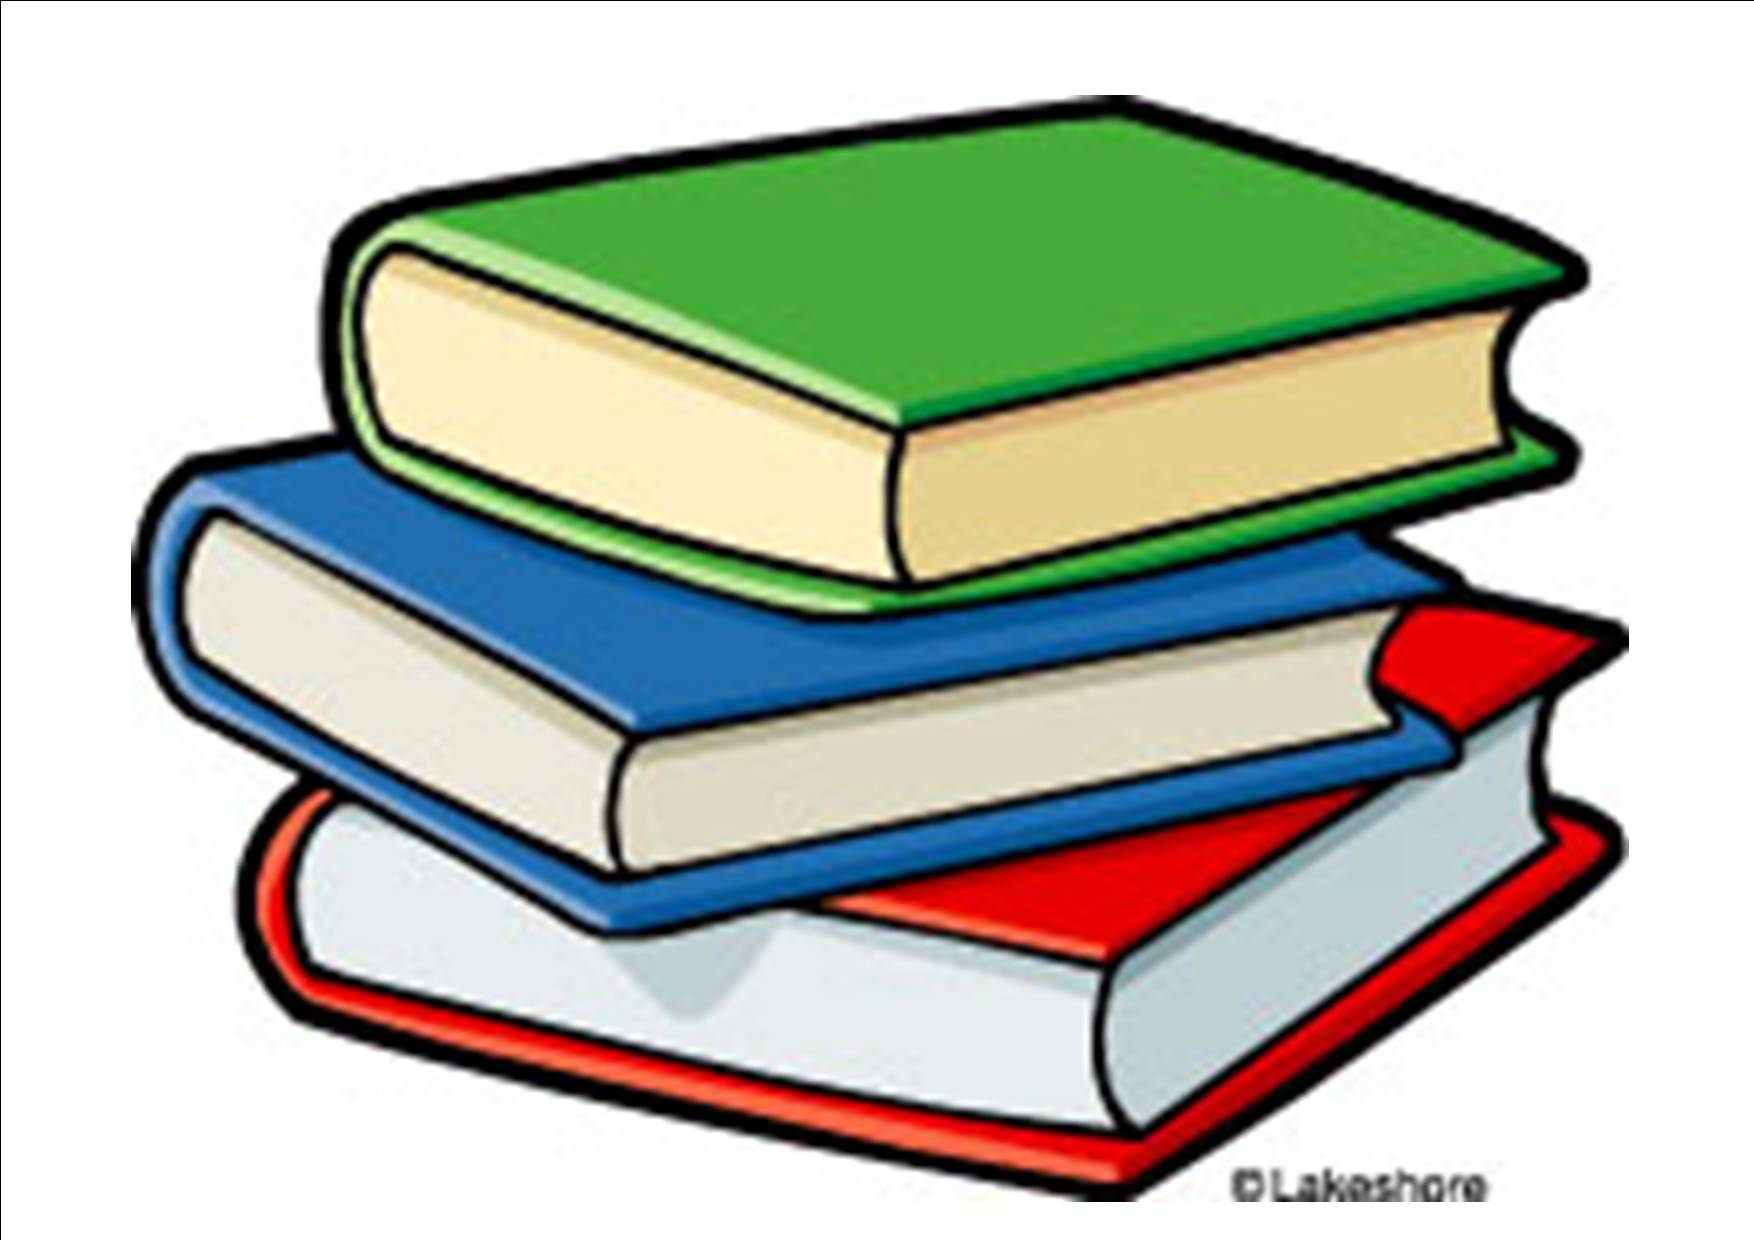 Free Book Cliparts, Download Free Clip Art, Free Clip Art on.